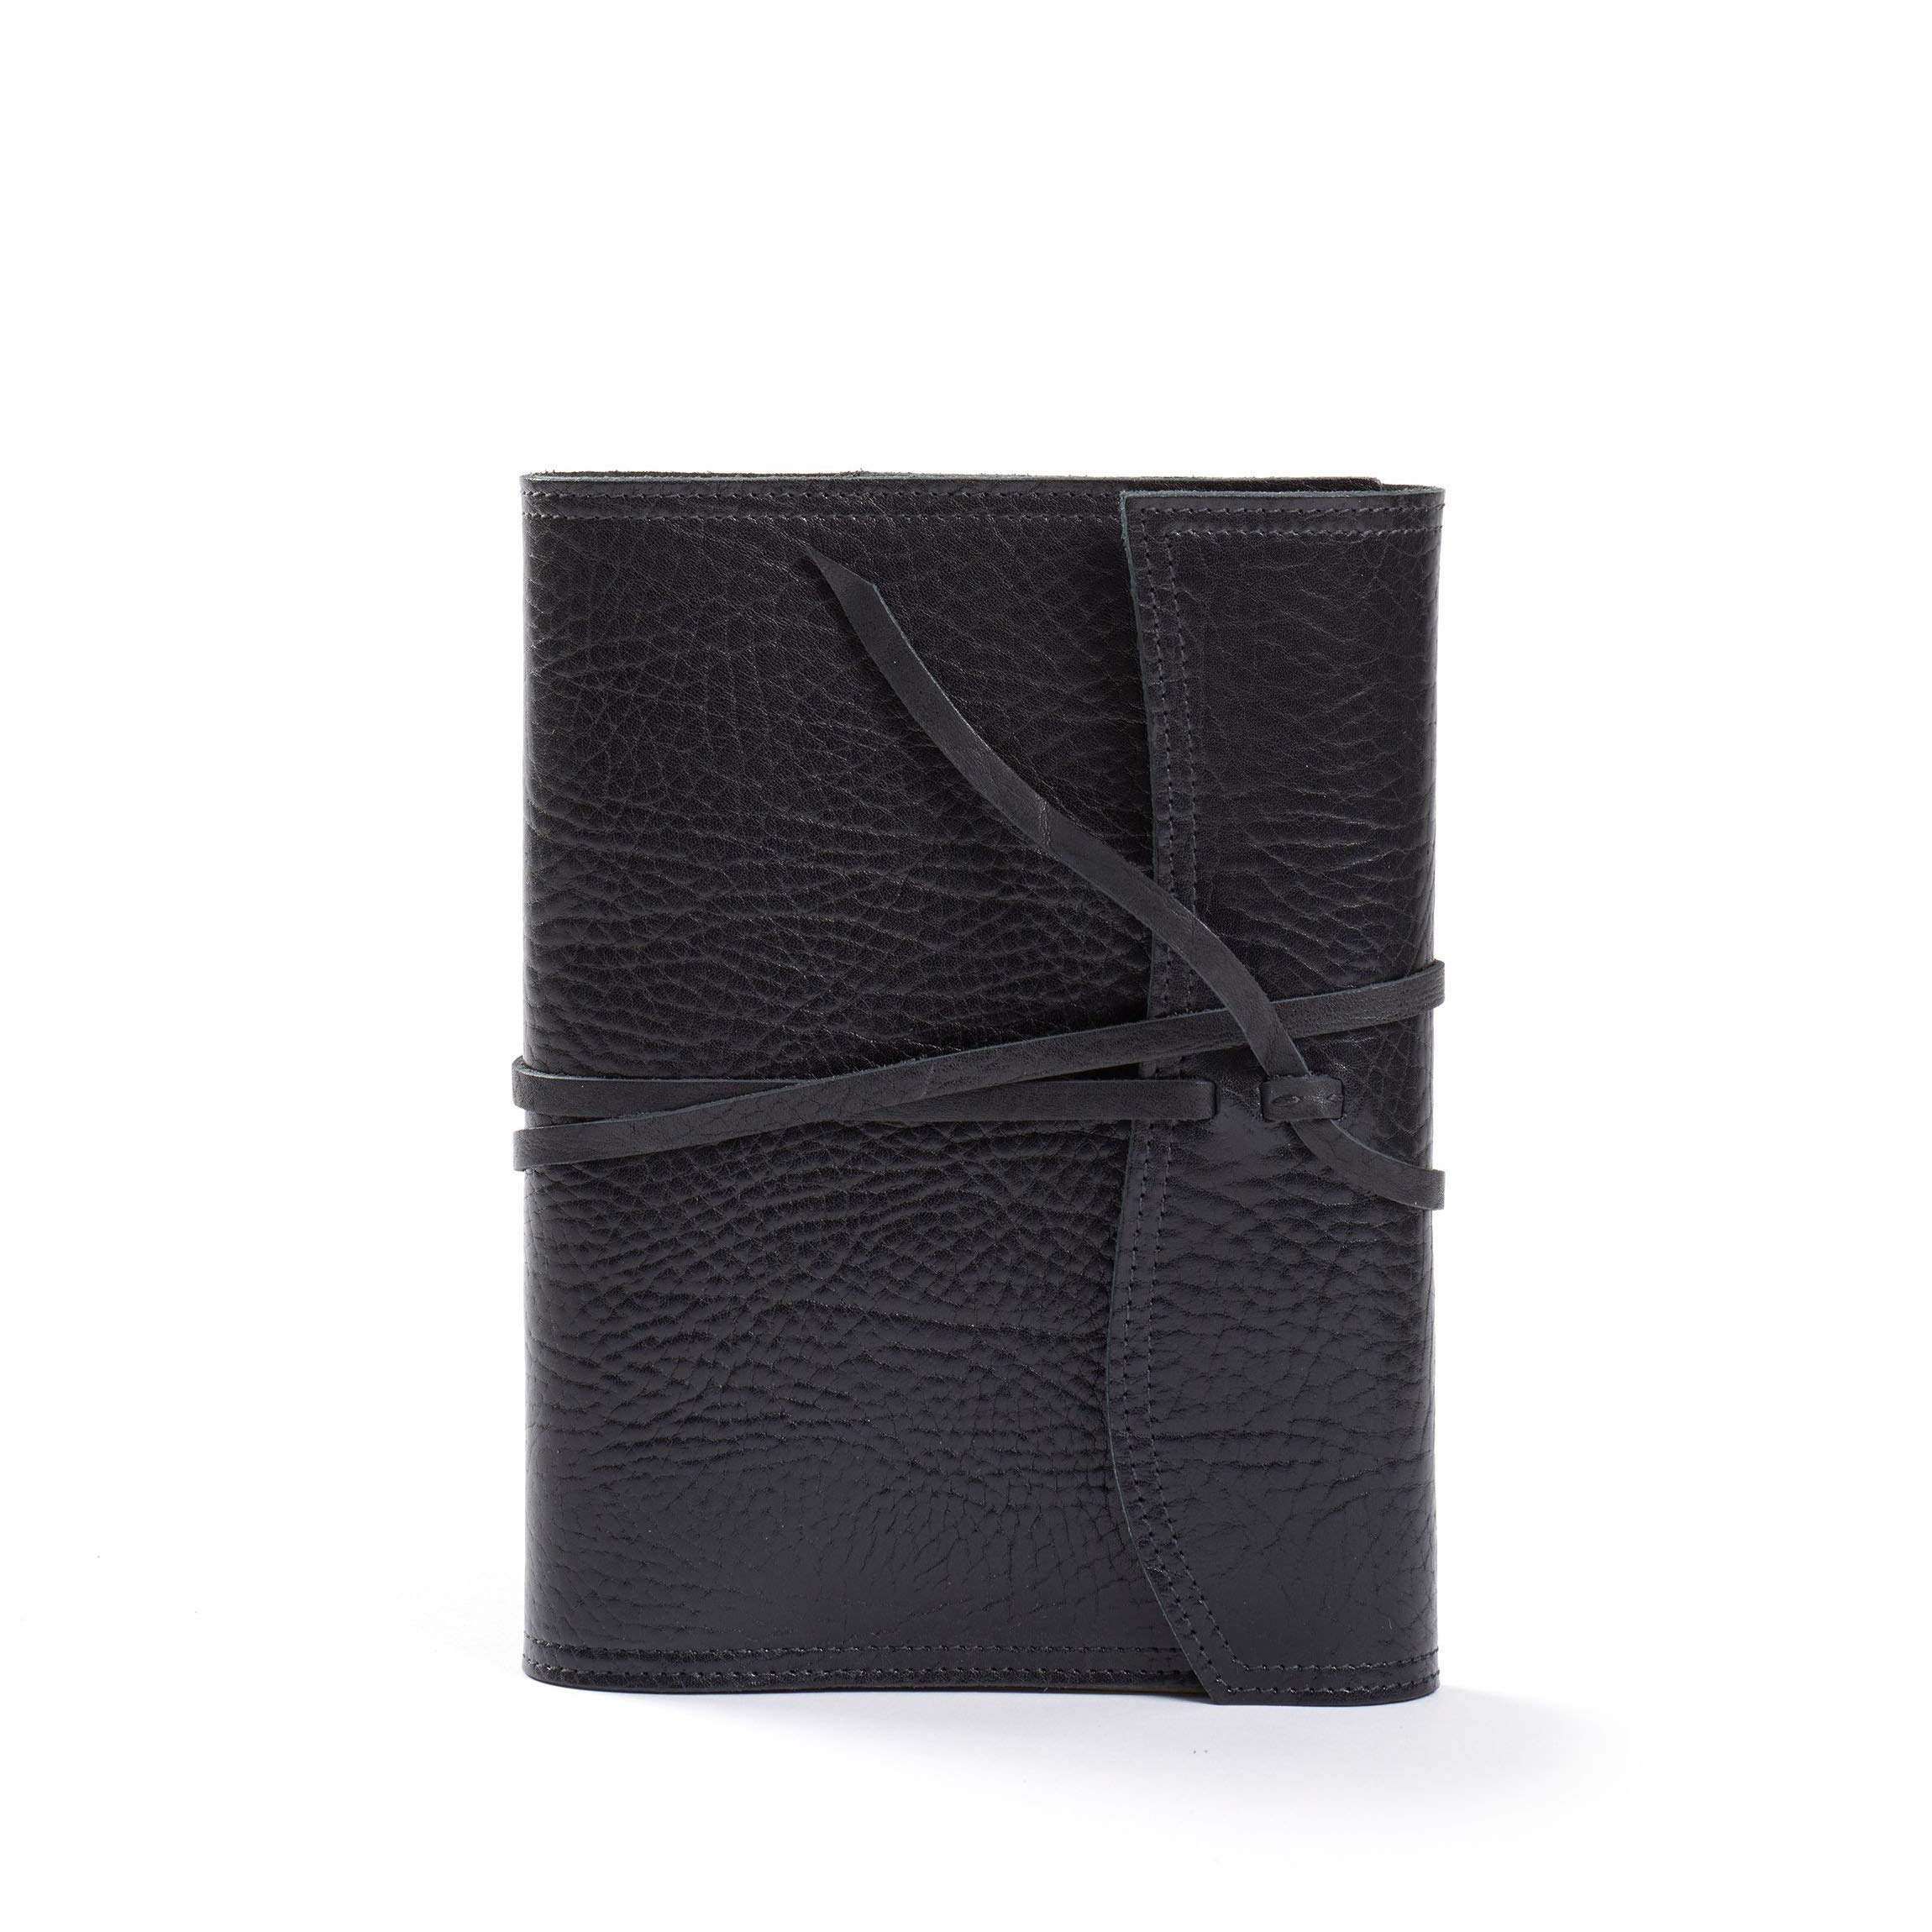 Medium Wrap Journal - Full Grain Italian Leather Leather - Ebony (Black)